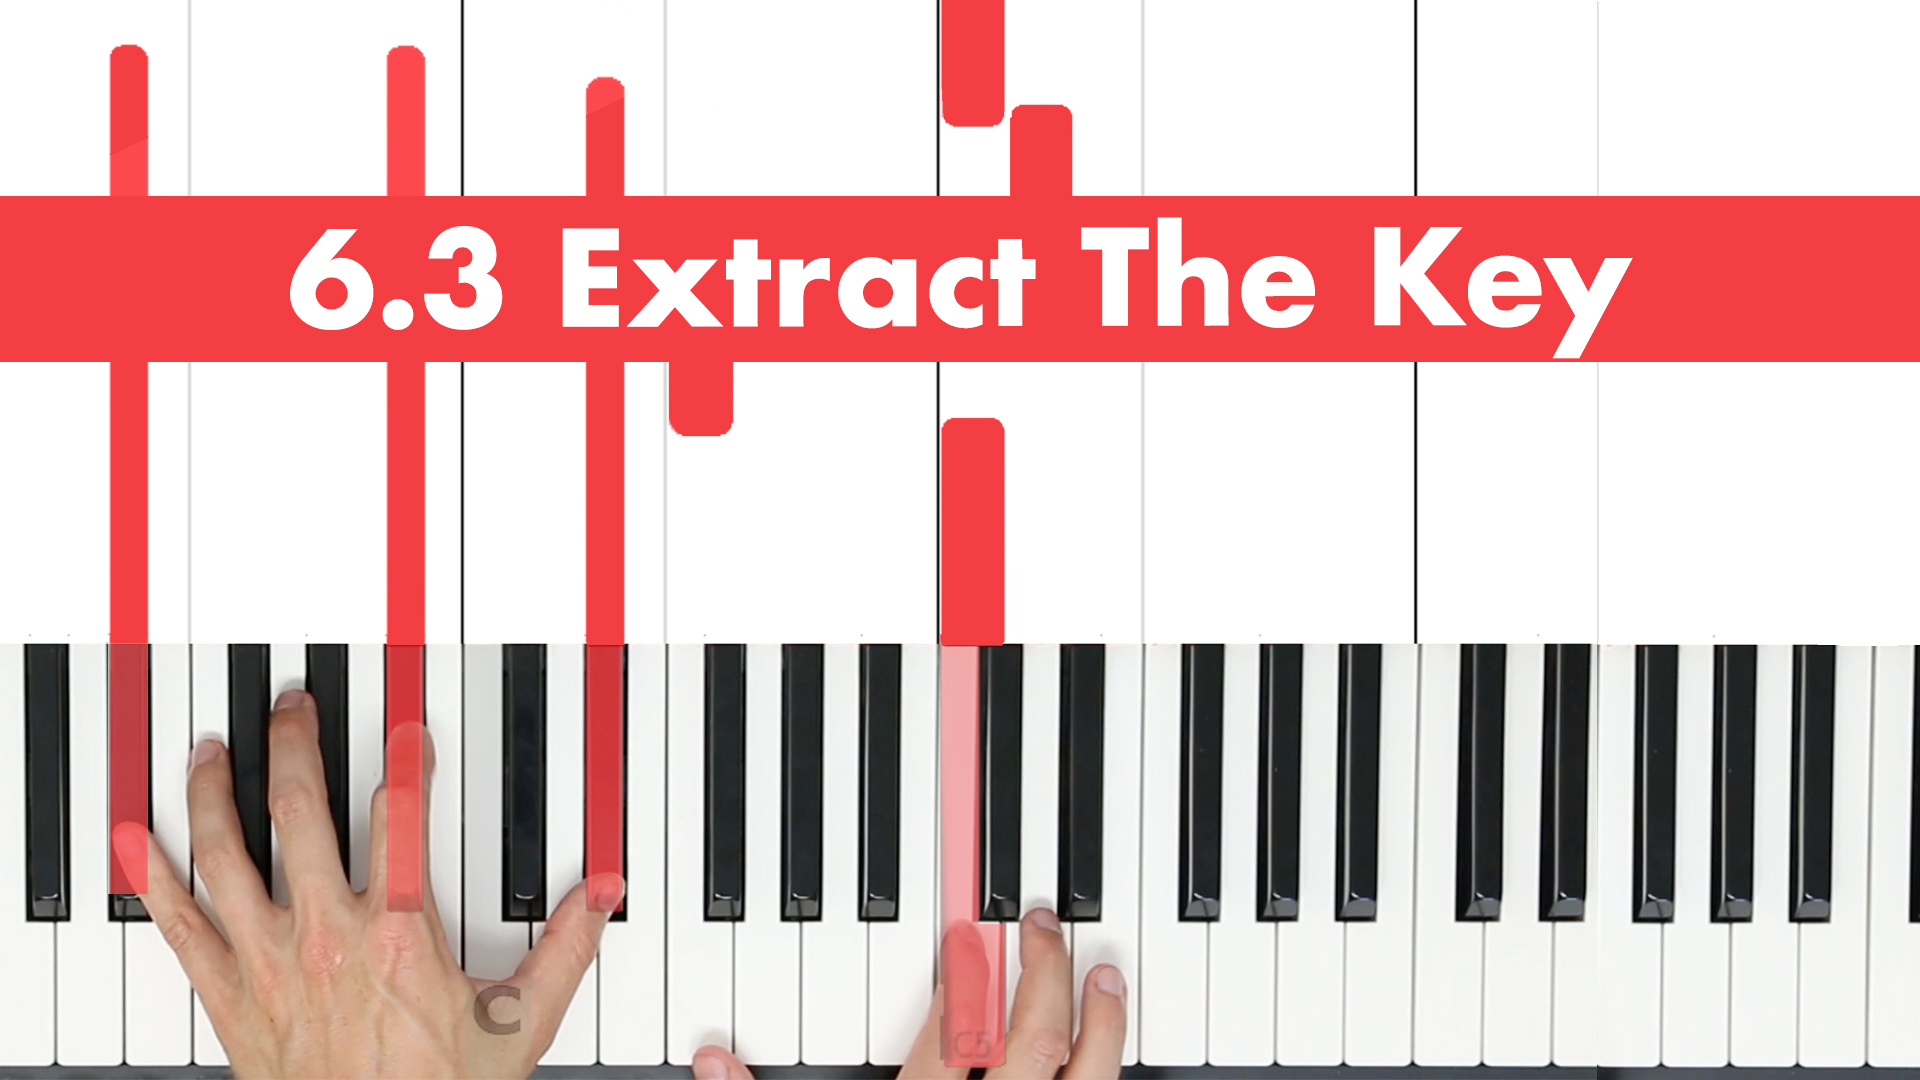 6.3 Extract the Key